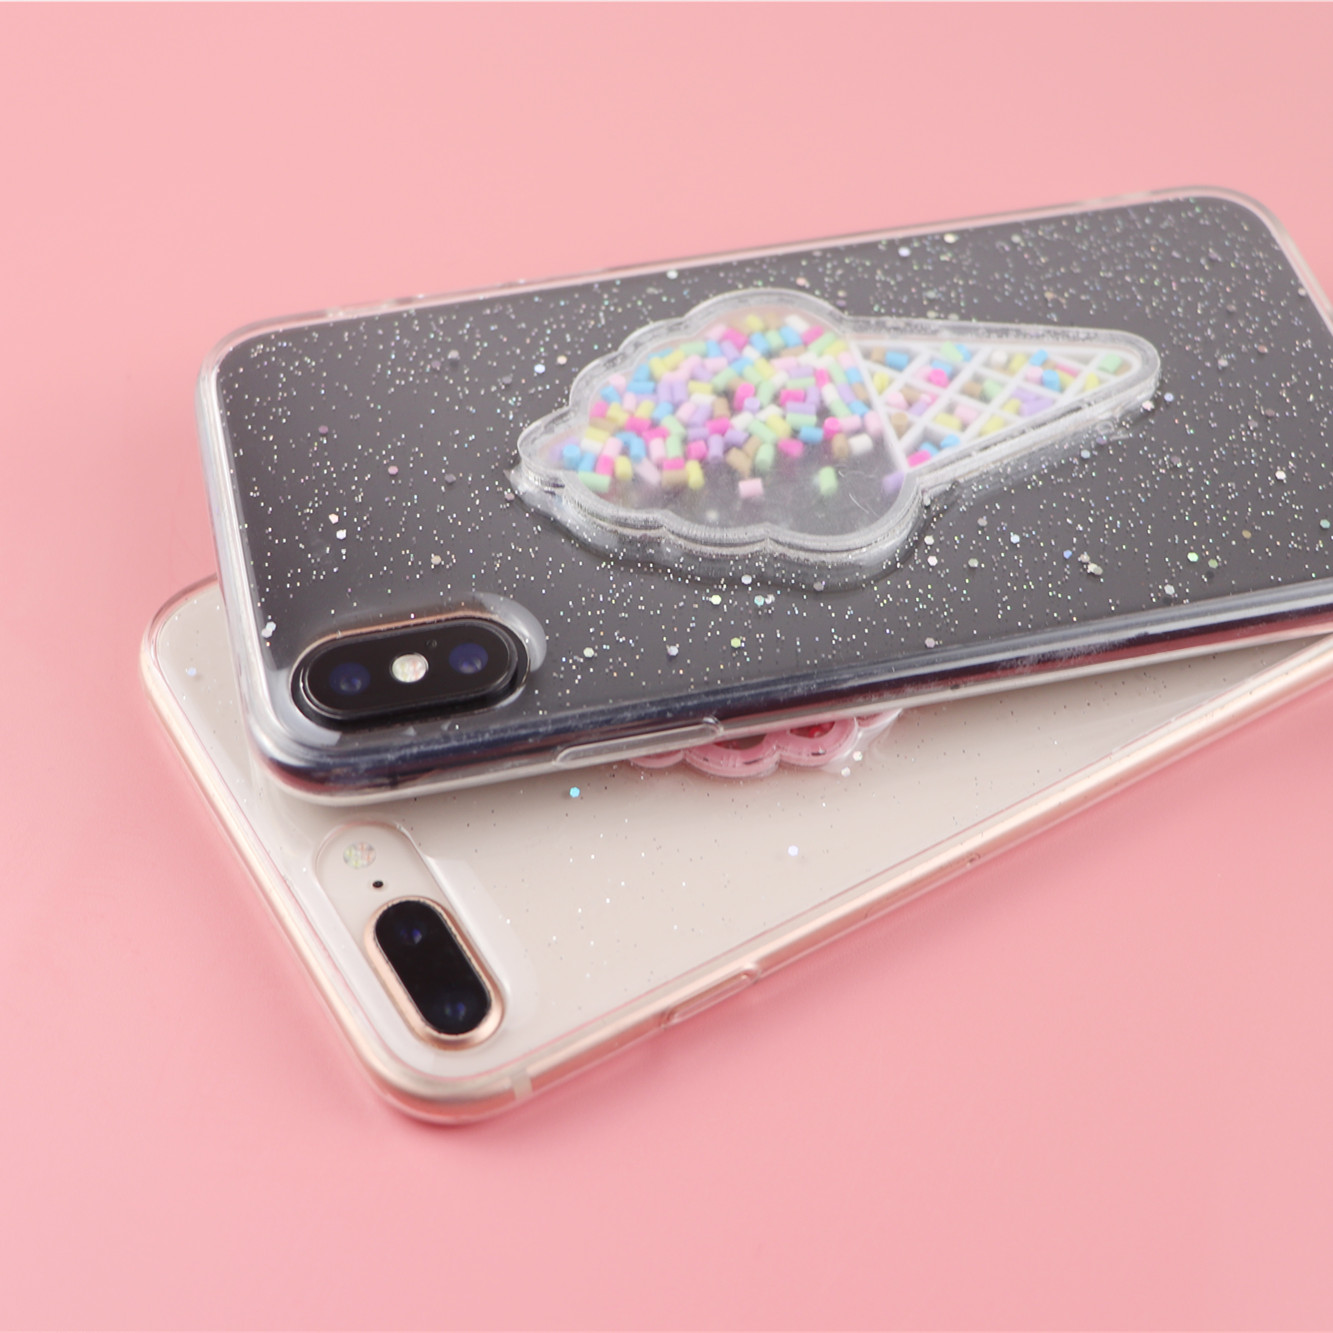 Pink Glitter Bling Ice Cream Phone cases for iphone XS xr 7 8 PLUS Cute Rainbow case for iphone XS MAX XR 7 8 6s Soft TPU cover